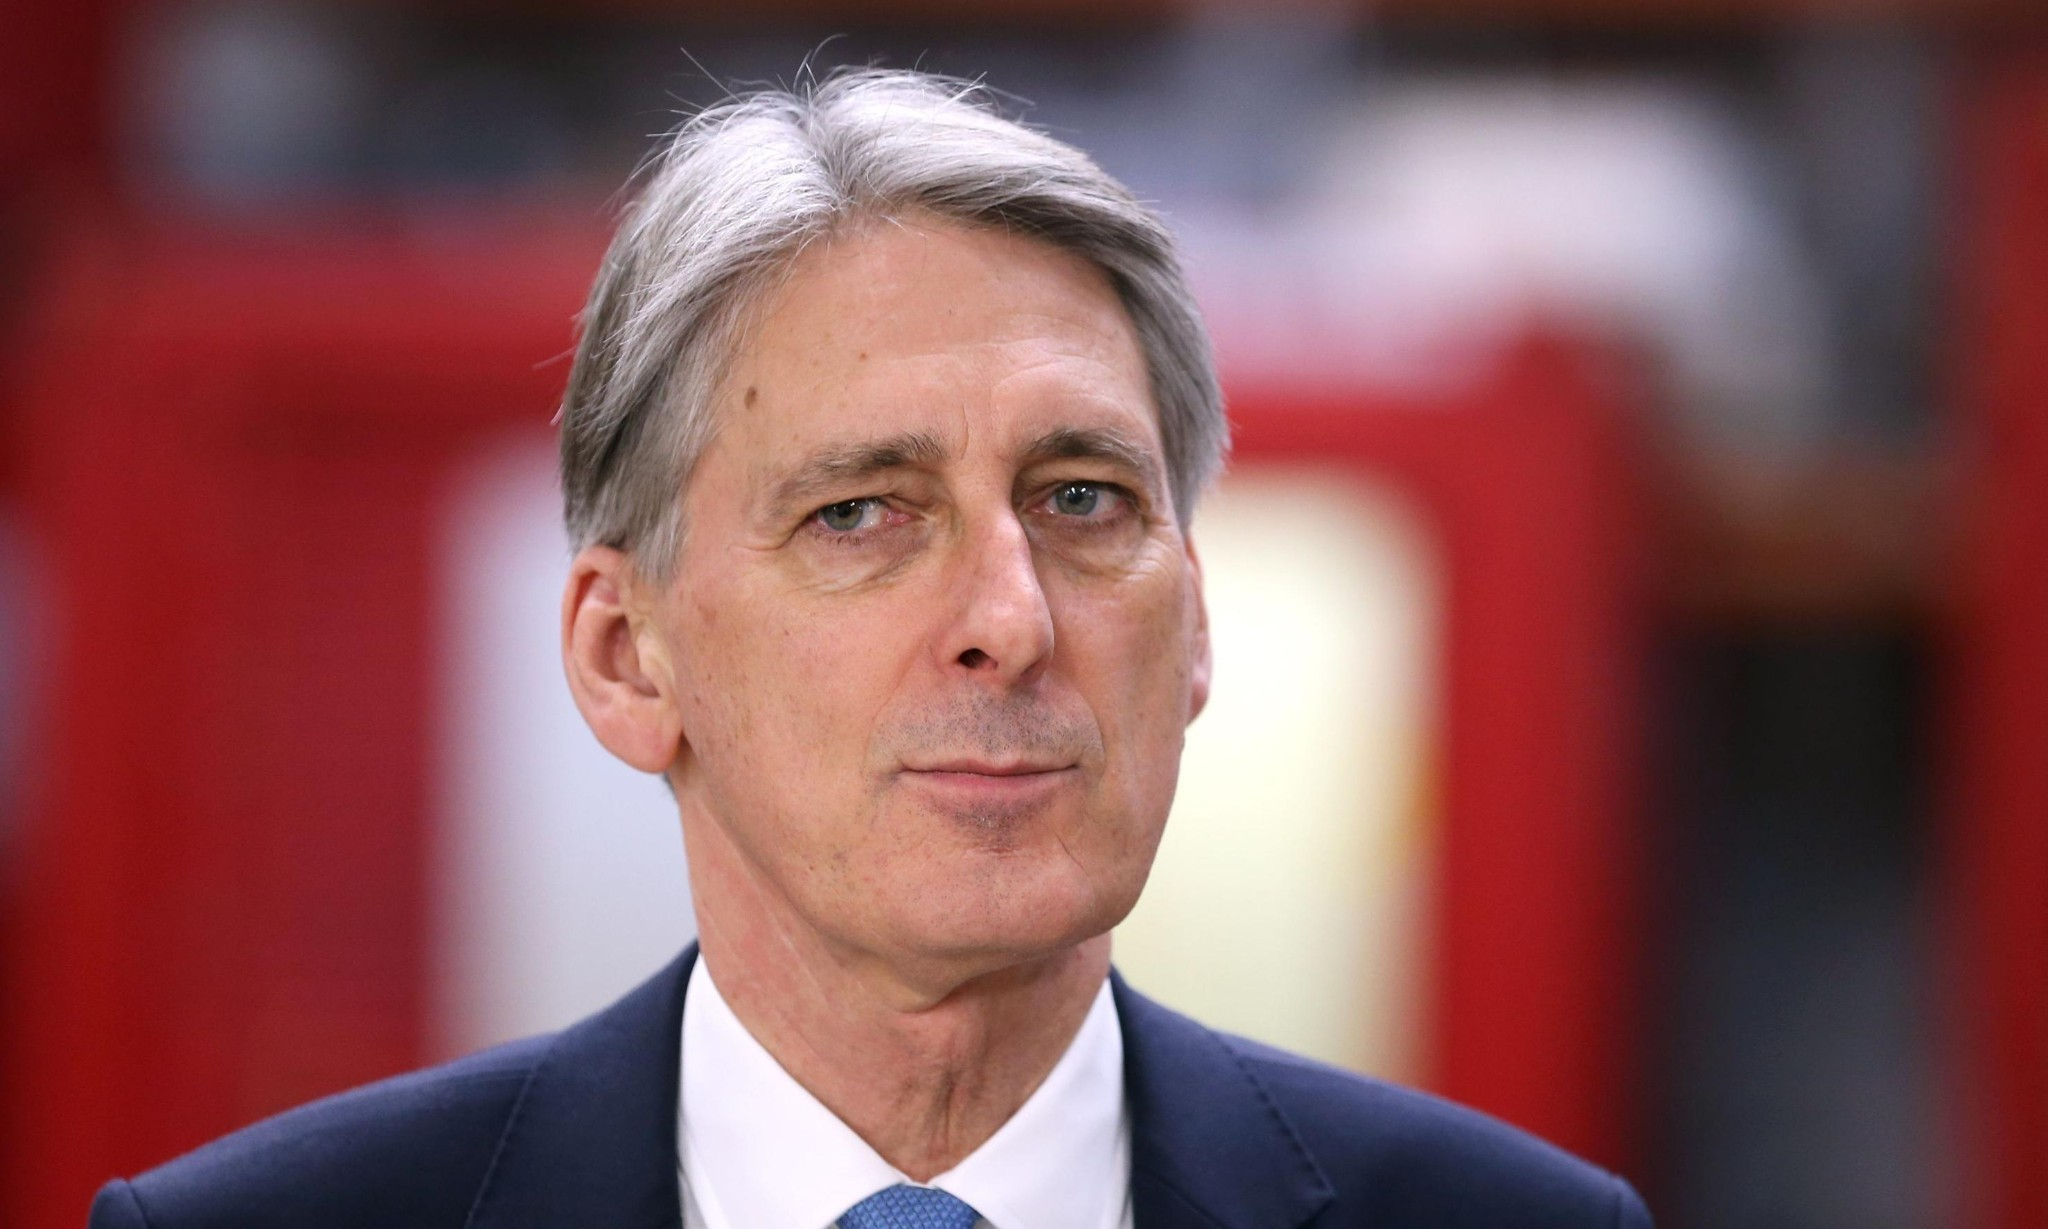 Hammond suggests UK without single market could become tax haven